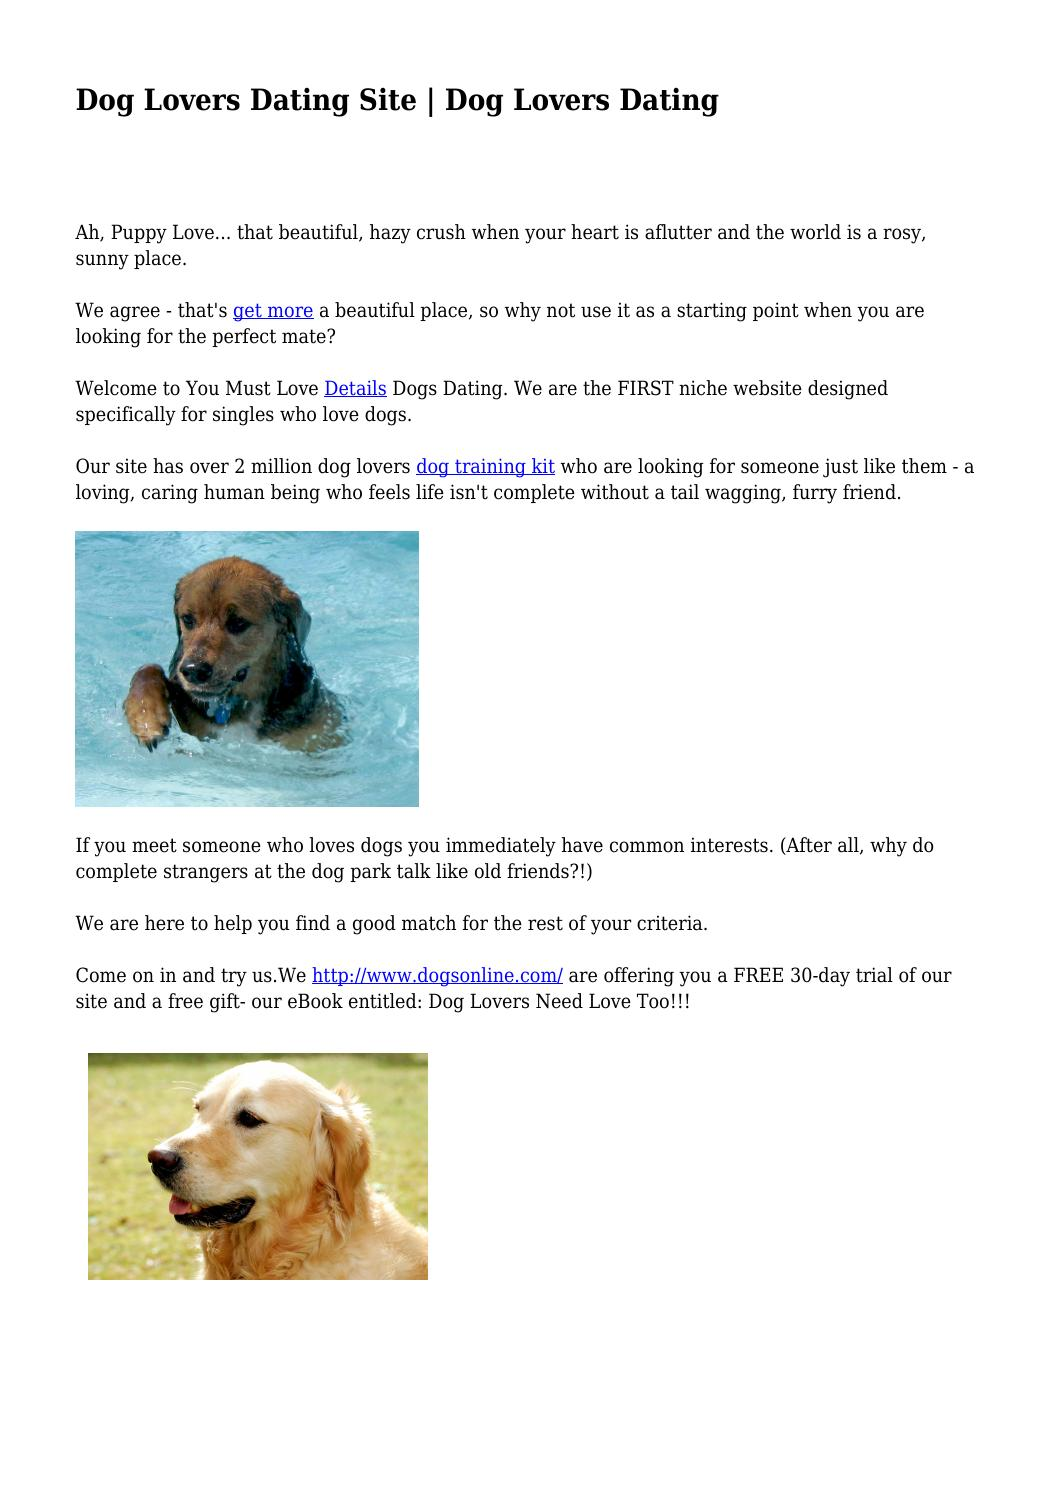 Dog Lovers Dating Site | Dog Lovers Dating by dysfunctionalmi00 - issuu